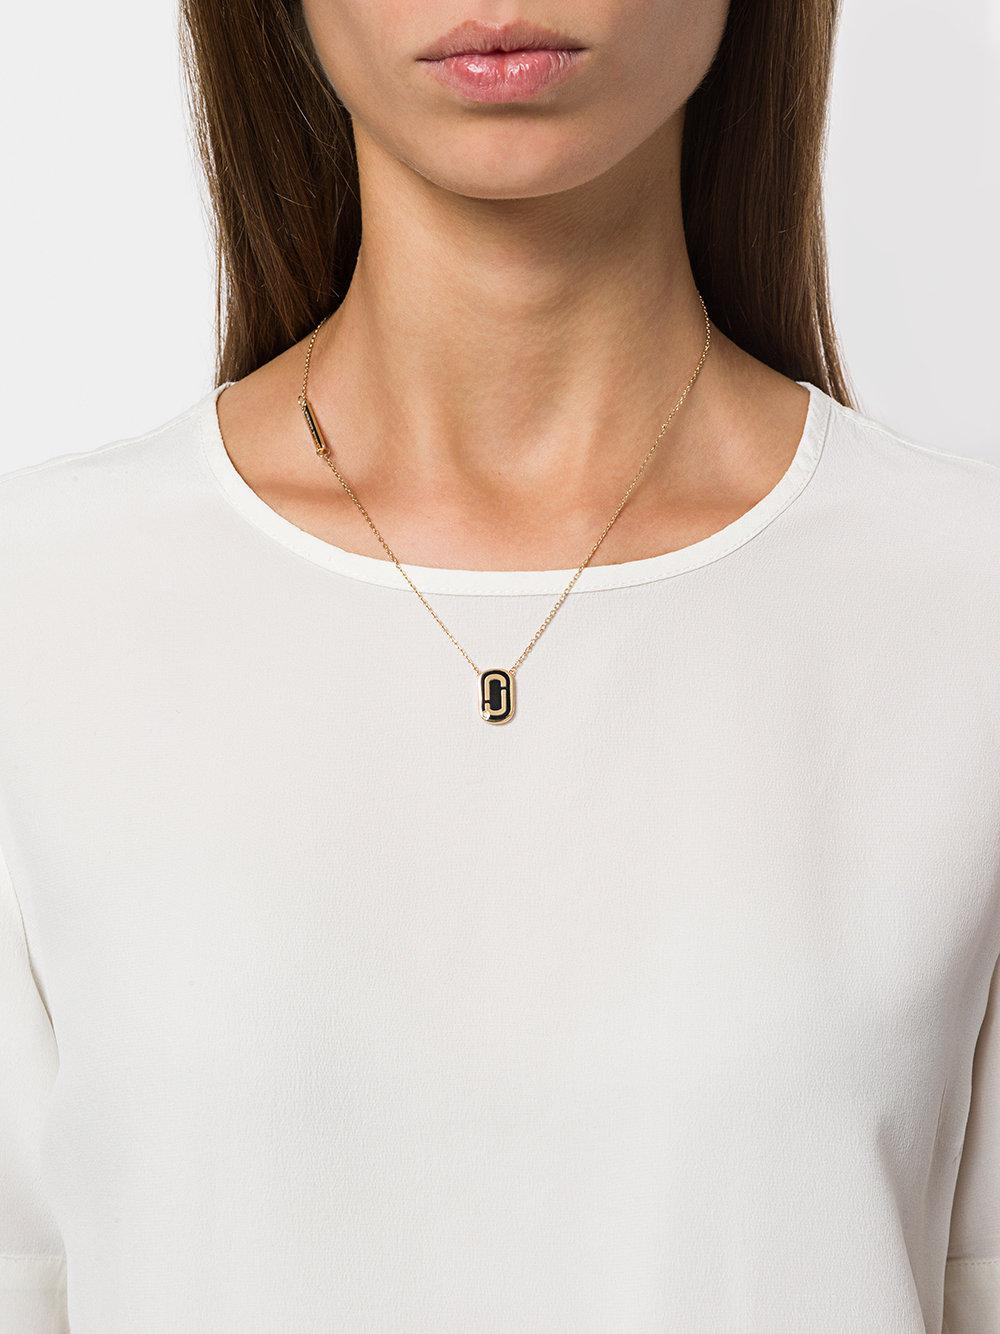 Marc Jacobs Icon Enamel Pendant Necklace in Black & Gold (Metallic)